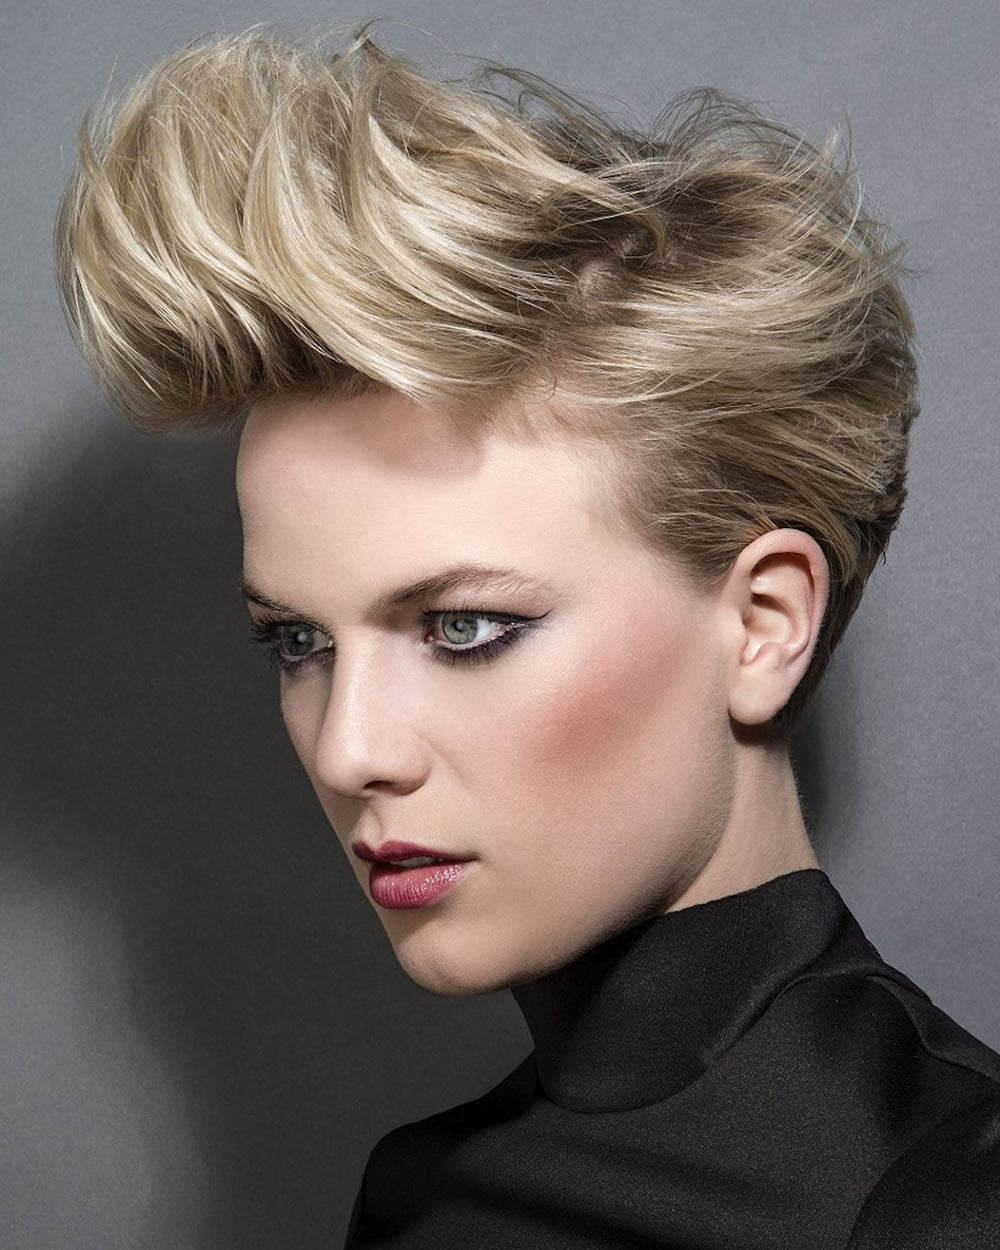 2018 Pixie Hairstyles for Short Hair & Easy + Fast Pixie ...